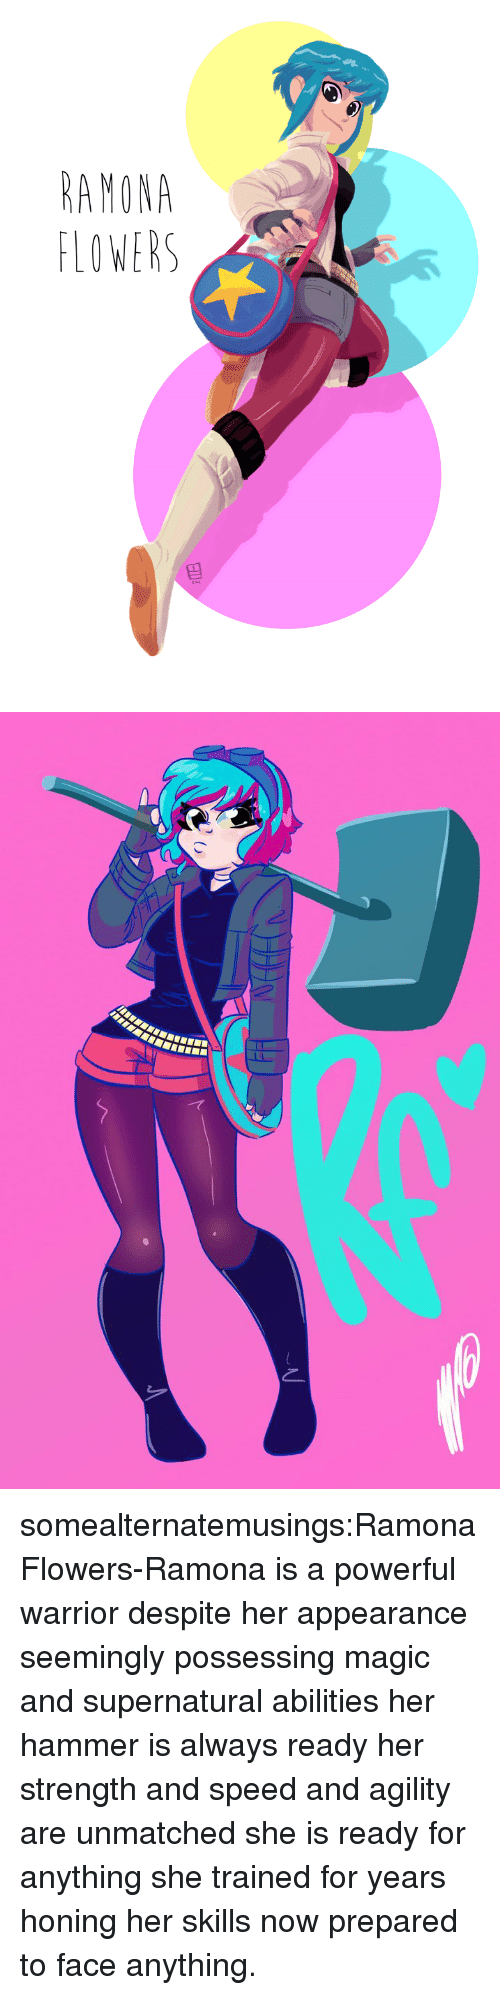 lowers: AMONA  LOWERS somealternatemusings:Ramona Flowers-Ramona is a powerful warrior despite her appearance seemingly possessing magic and supernatural abilities her hammer is always ready her strength and speed and agility are unmatched she is ready for anything she trained for years honing her skills now prepared to face anything.